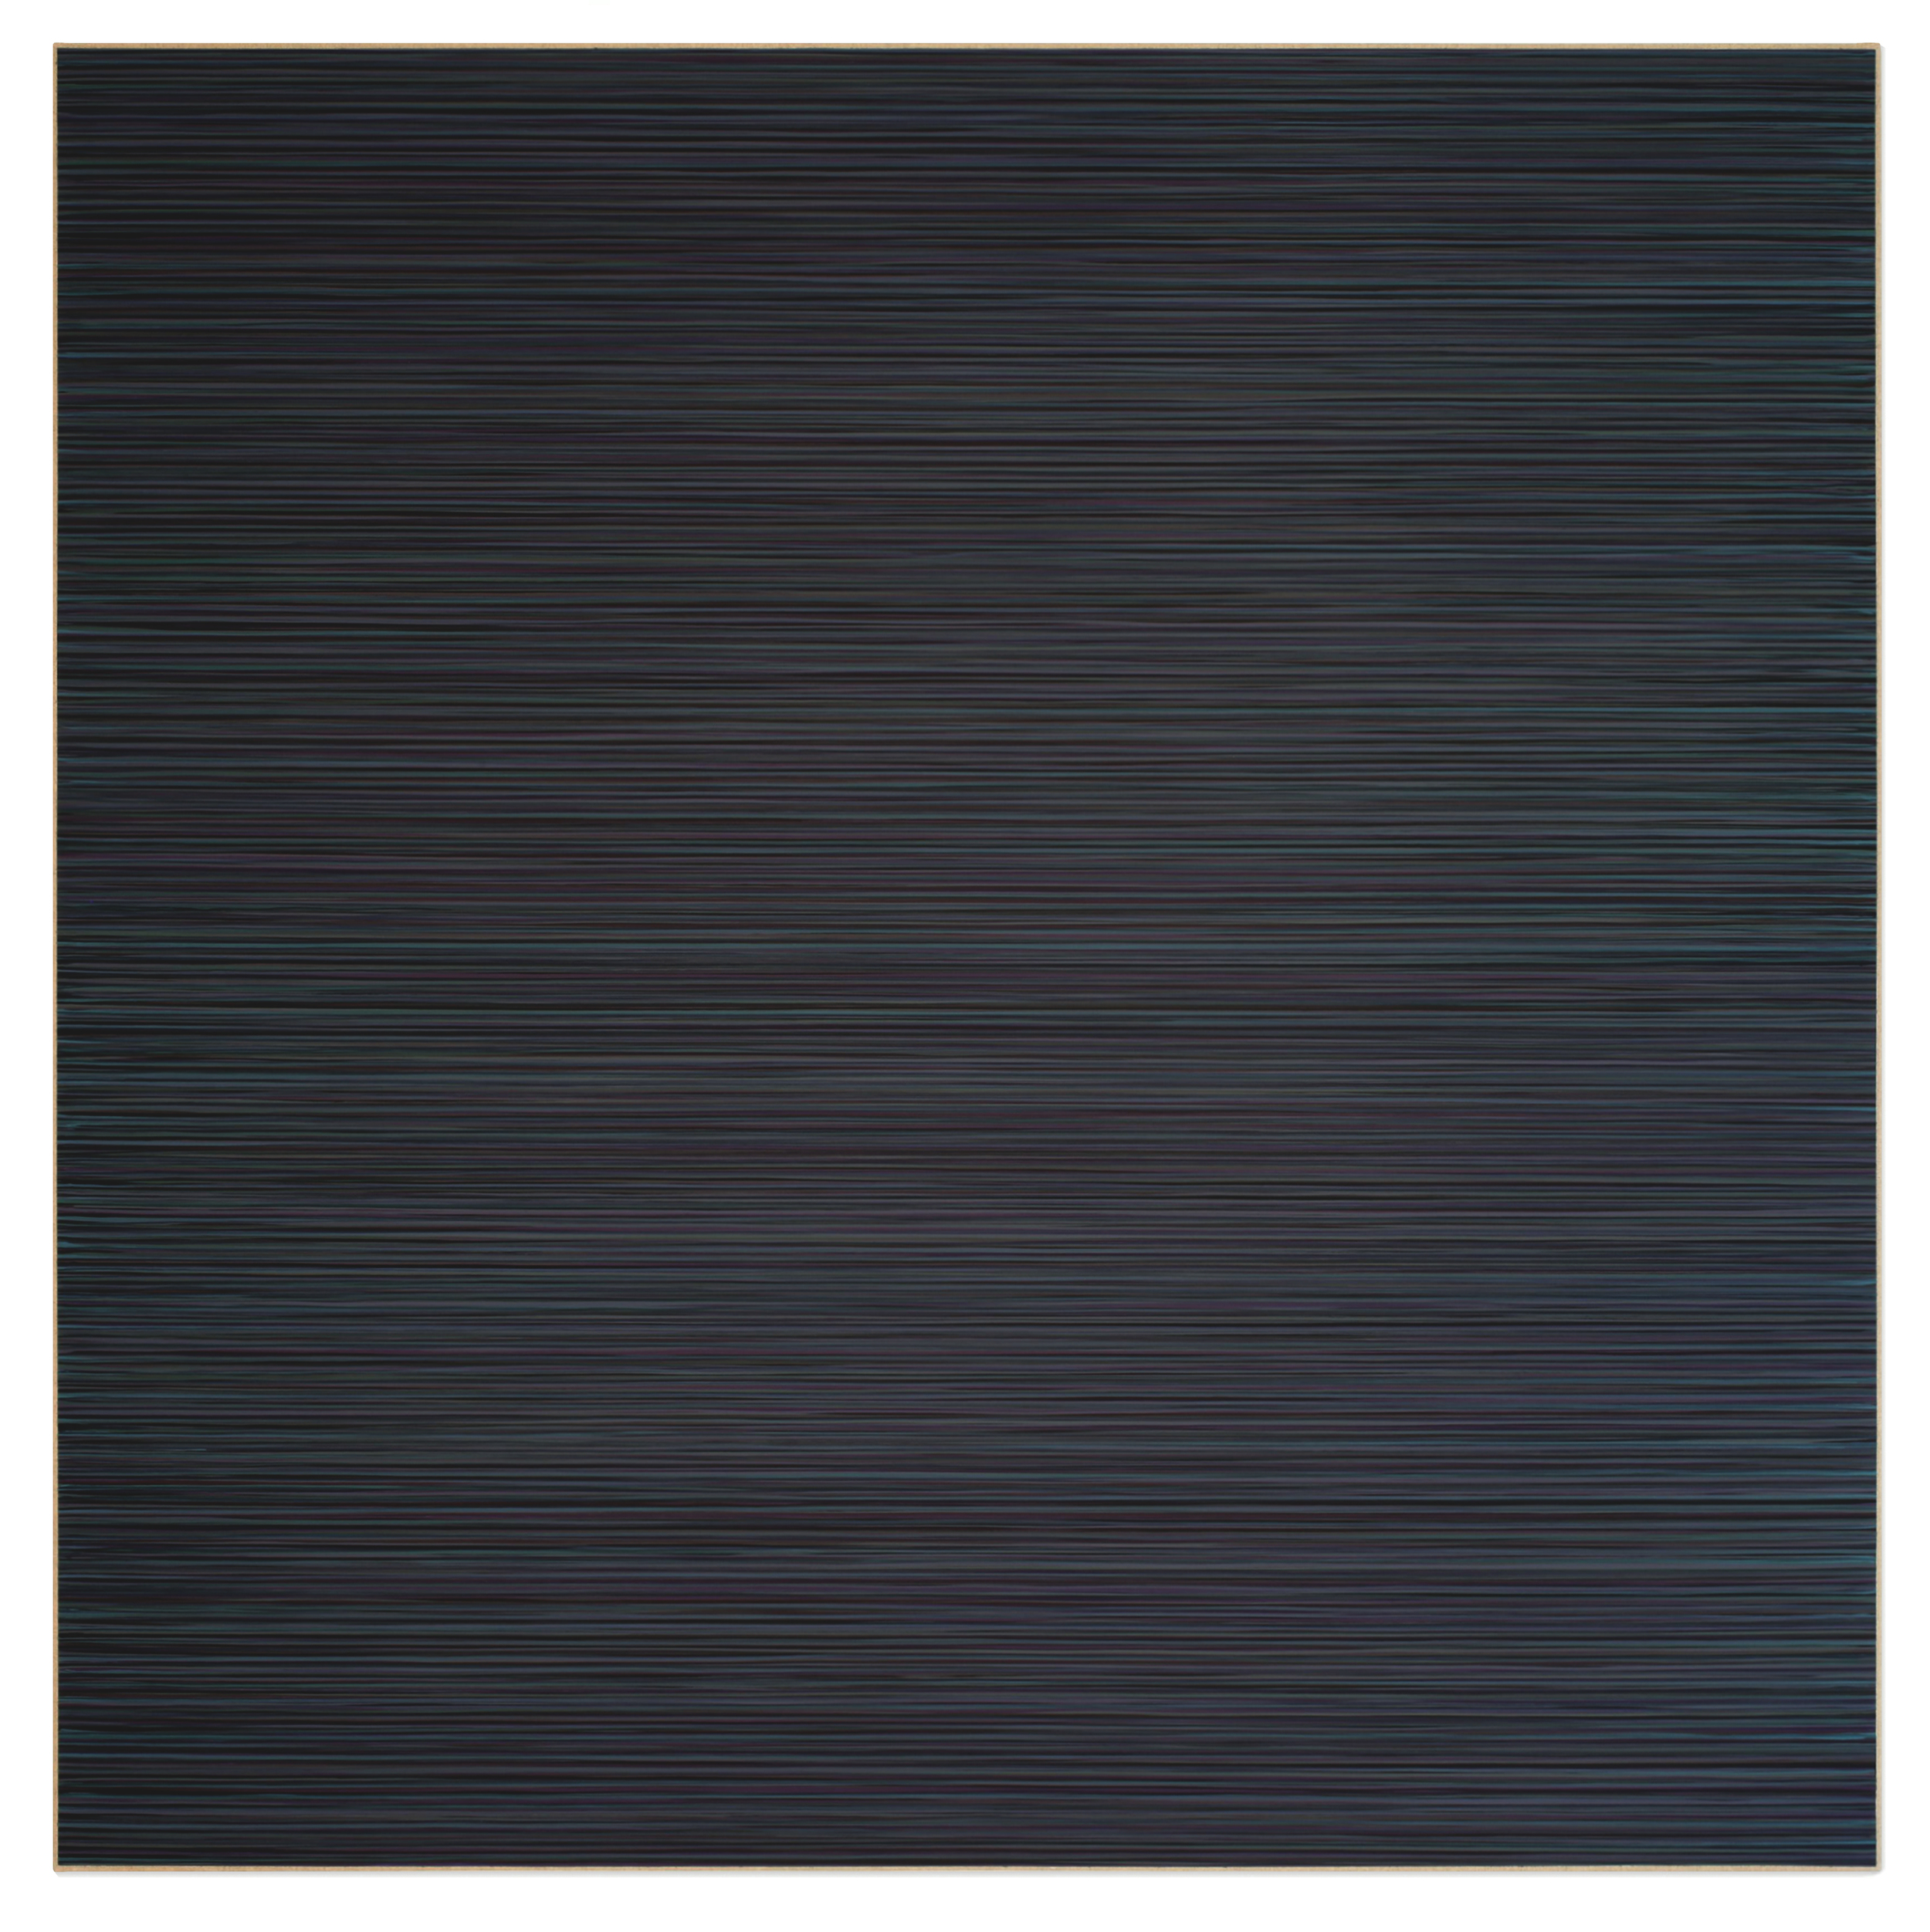 Untilted, 2014, 150x150 cm, 59.05x59.05 in